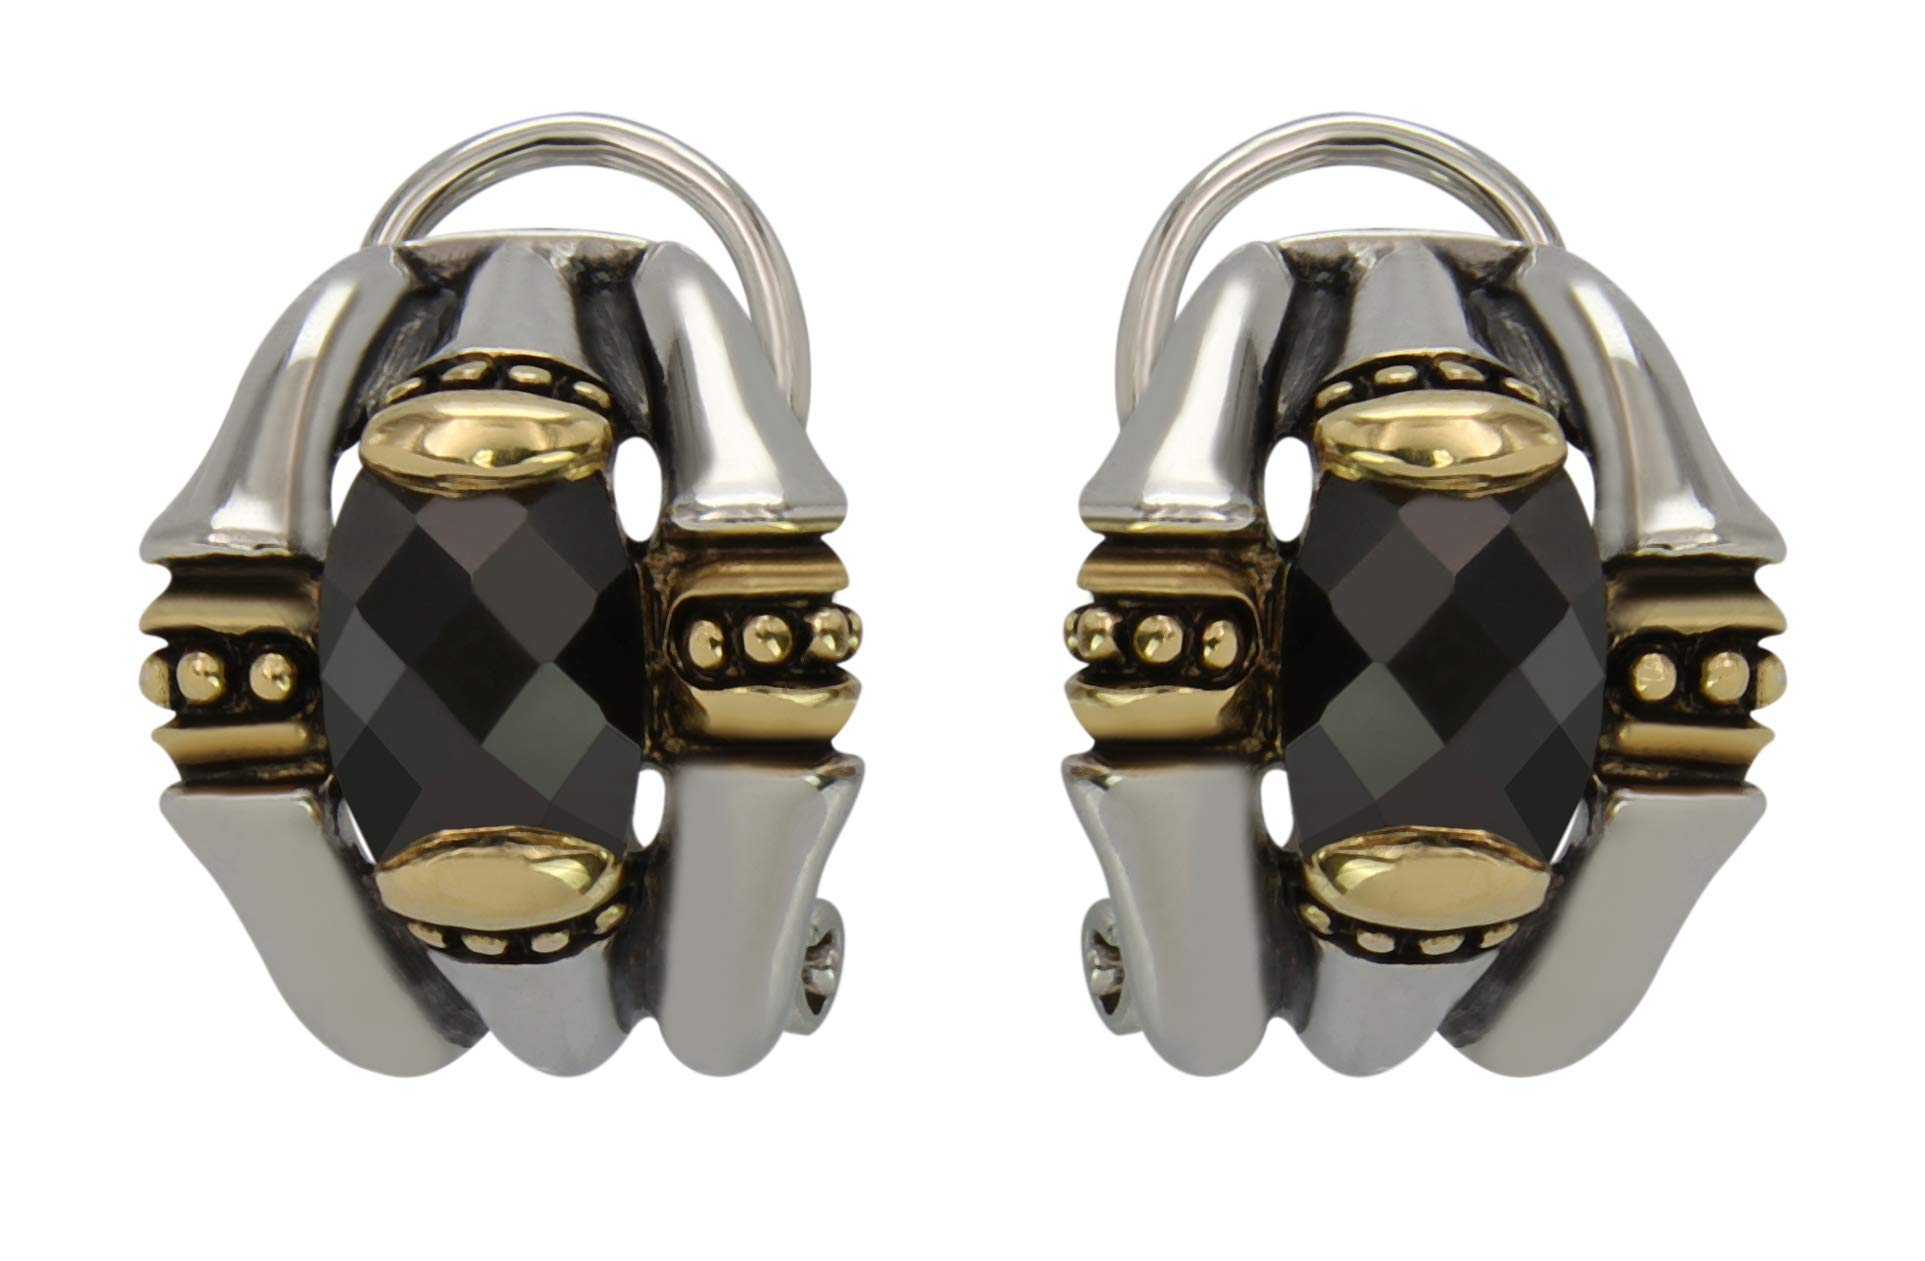 John Medeiros Two-Tone Omega Clip Post Earrings with Black Cubic Zirconia Made in The USA by John Medeiros